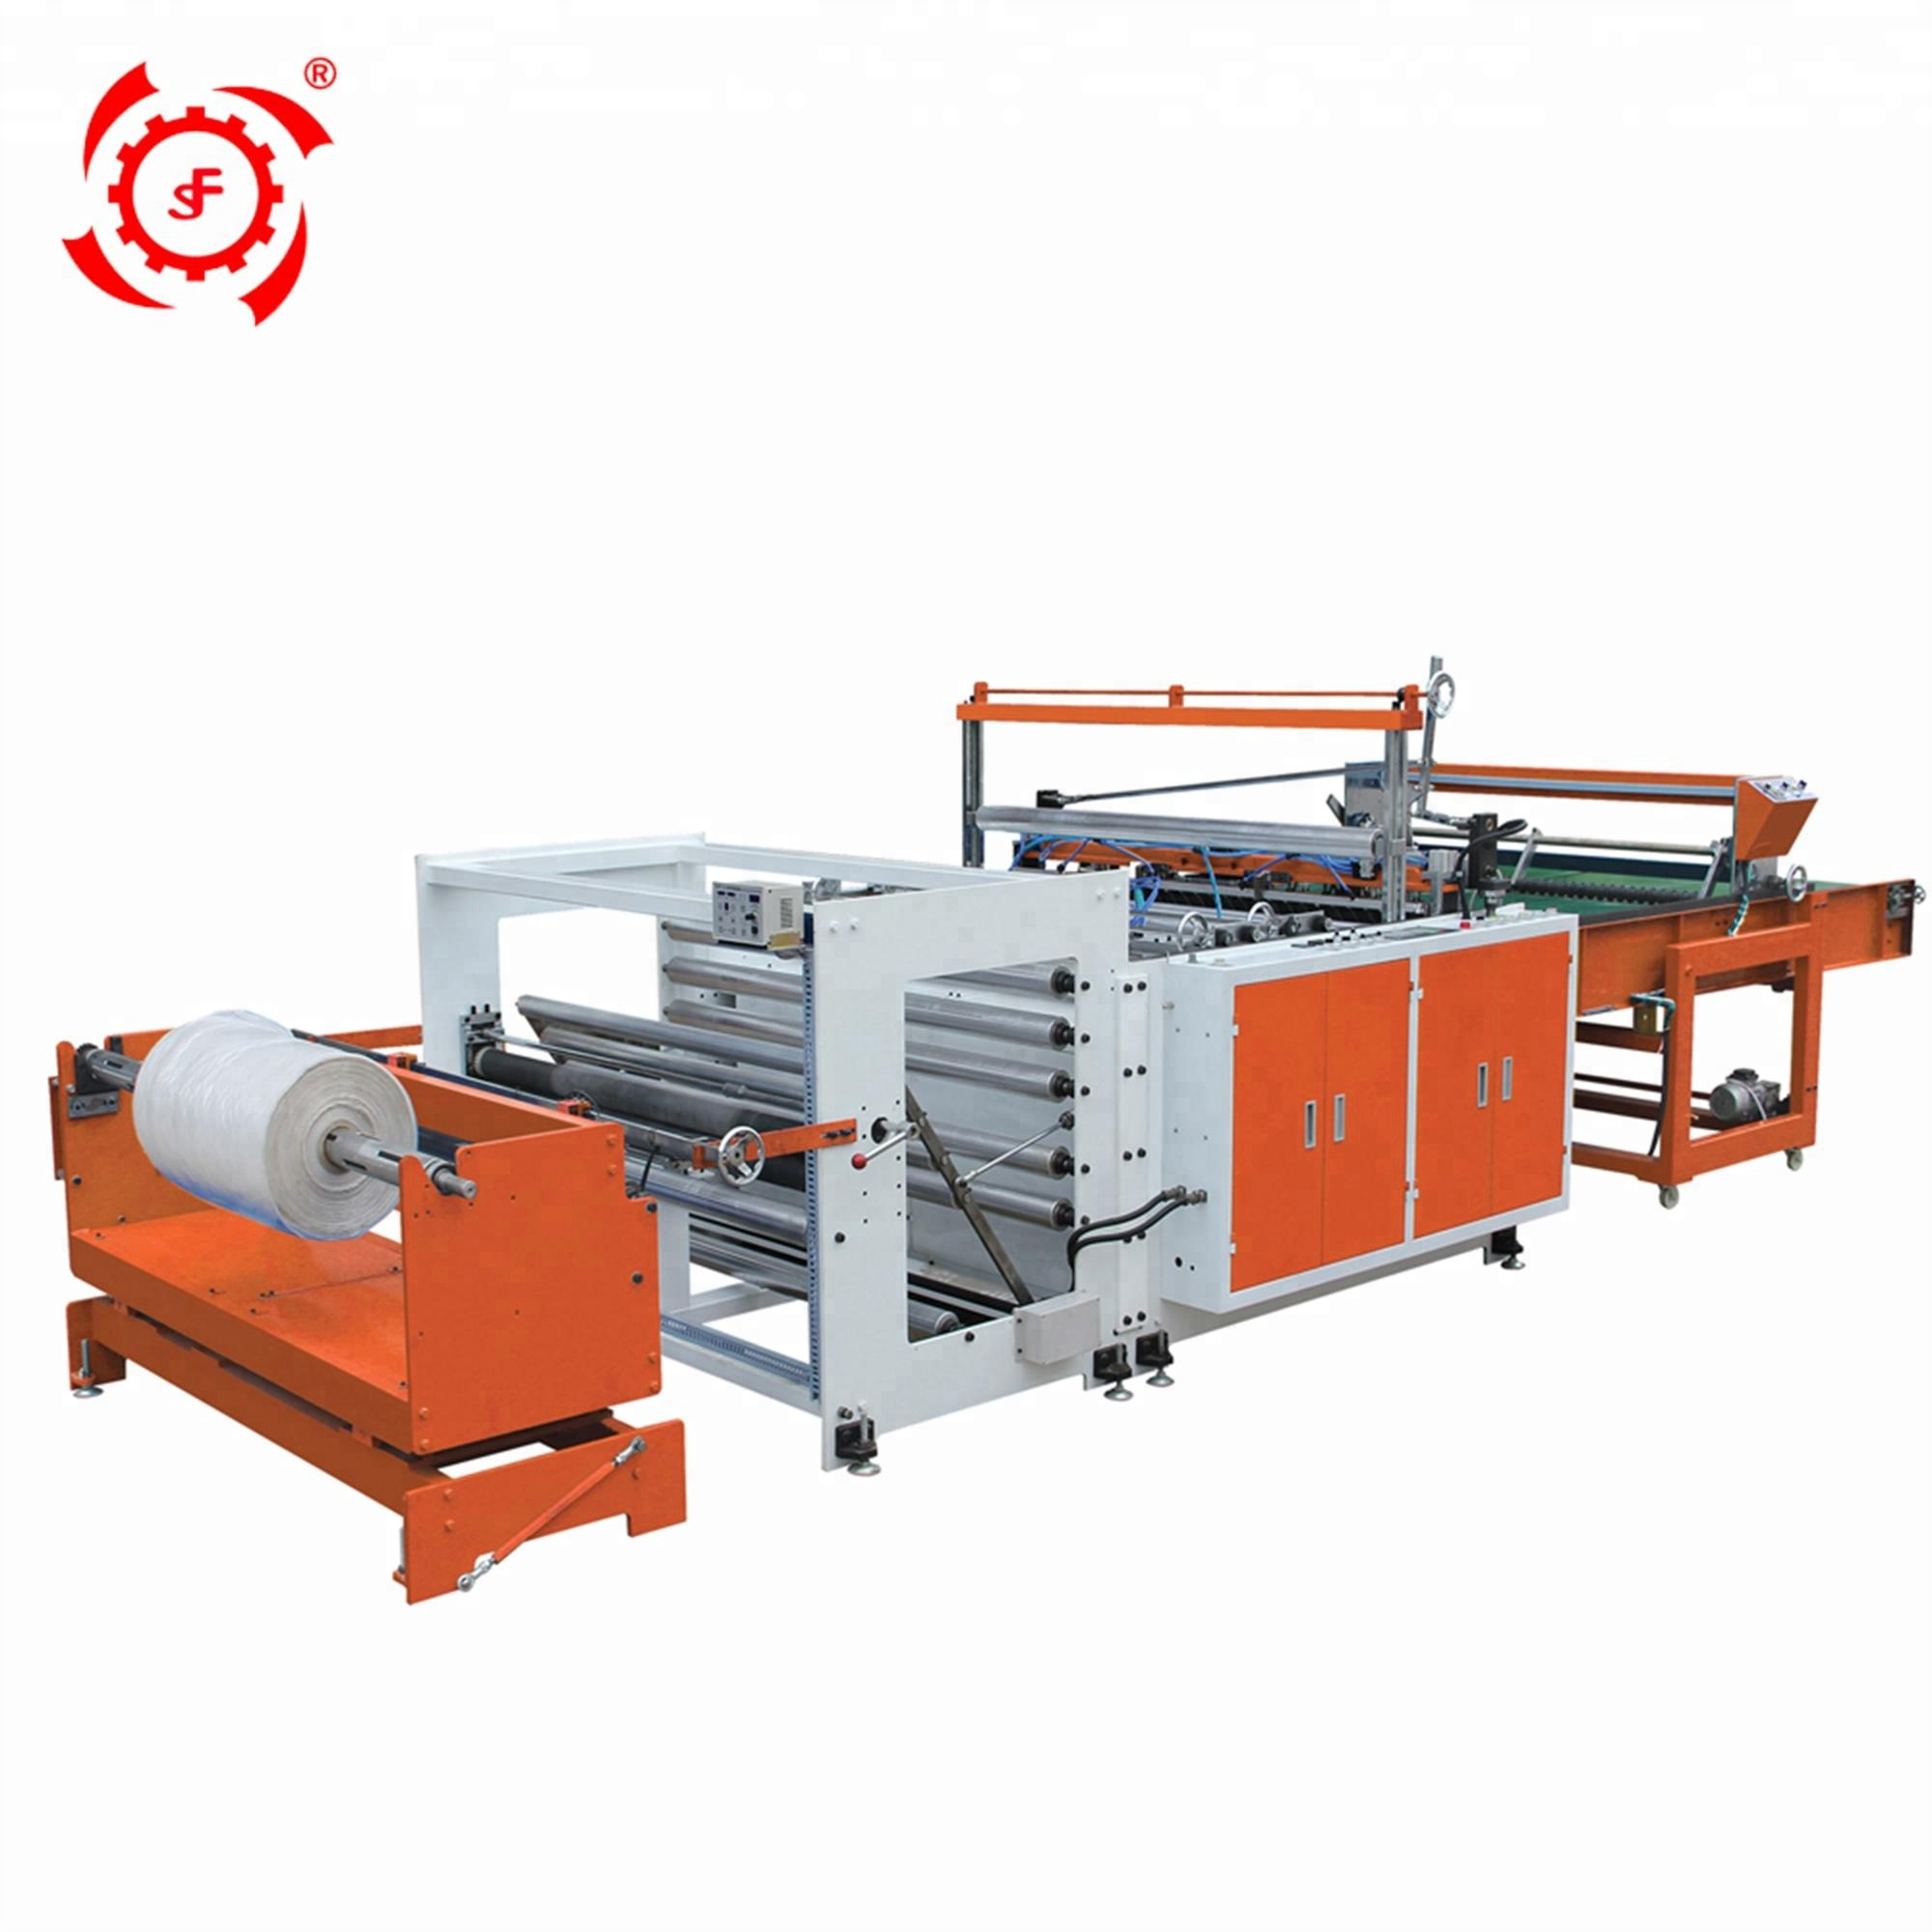 Shopping Bag Manufacturing Machine Price In Pakistan